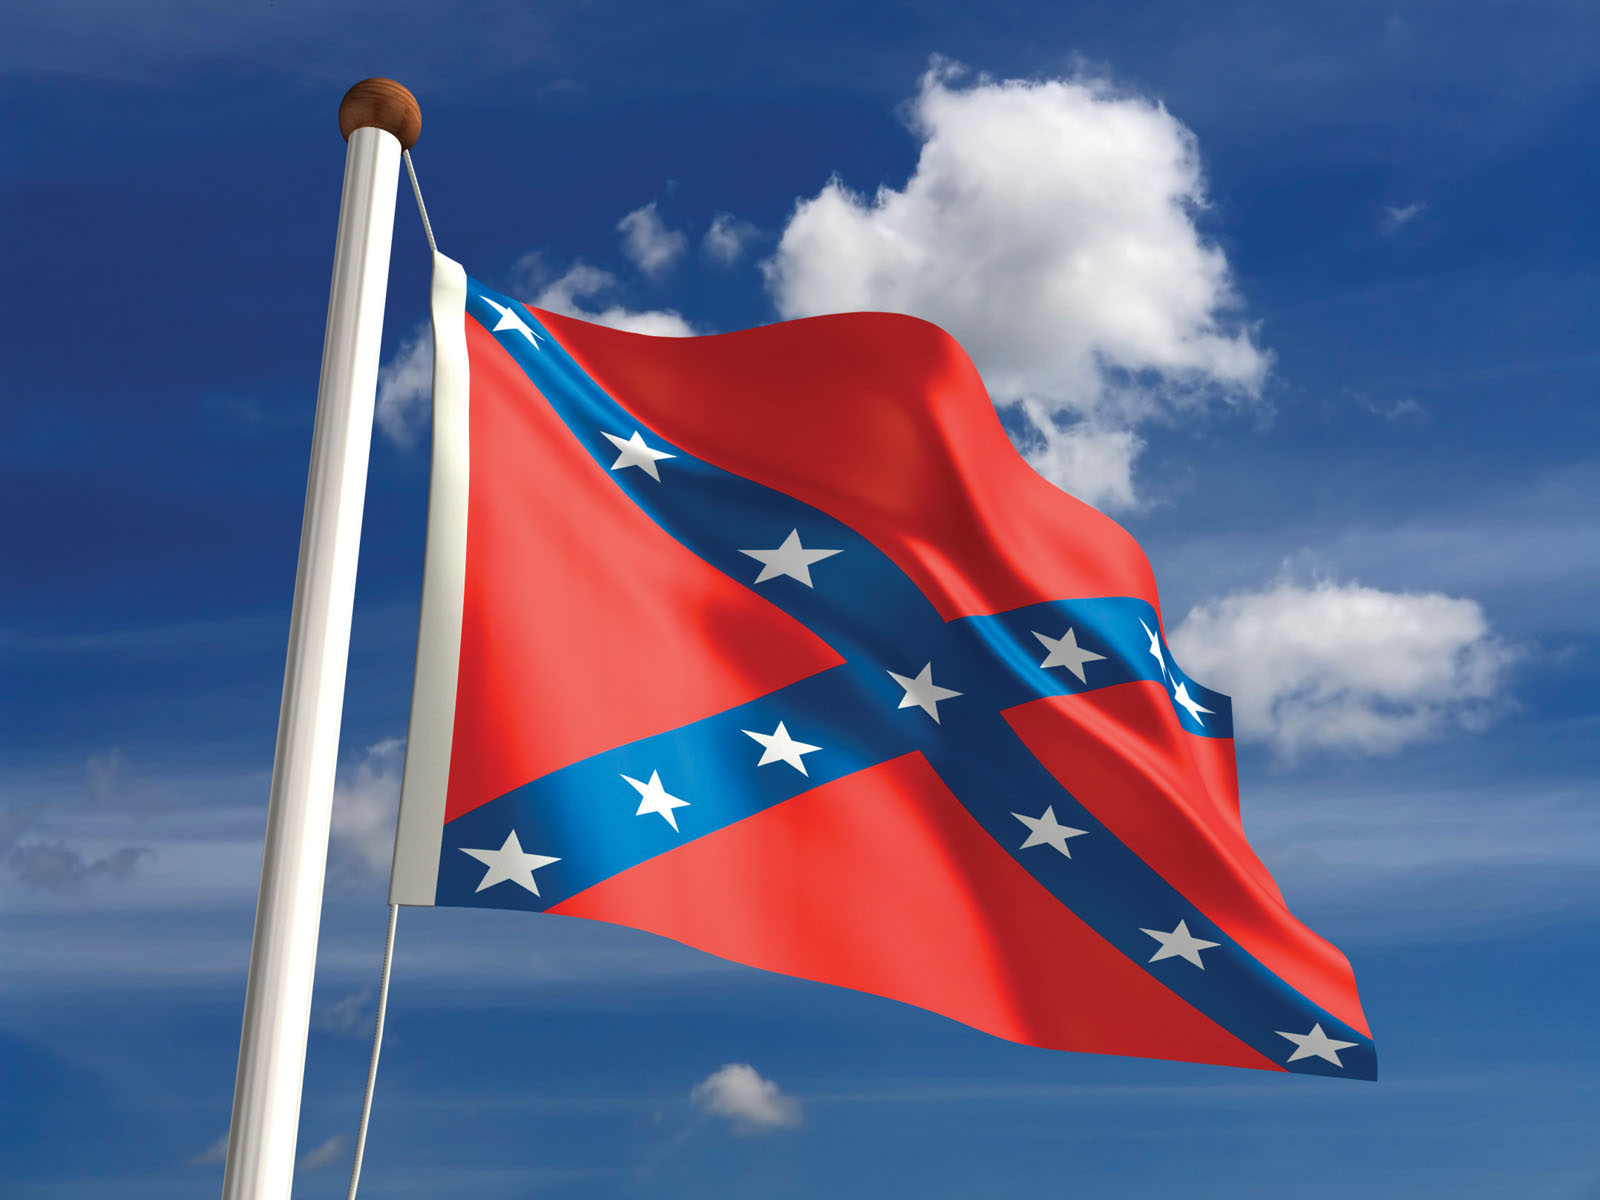 HD Rebel Flag Wallpapers 1600x1200